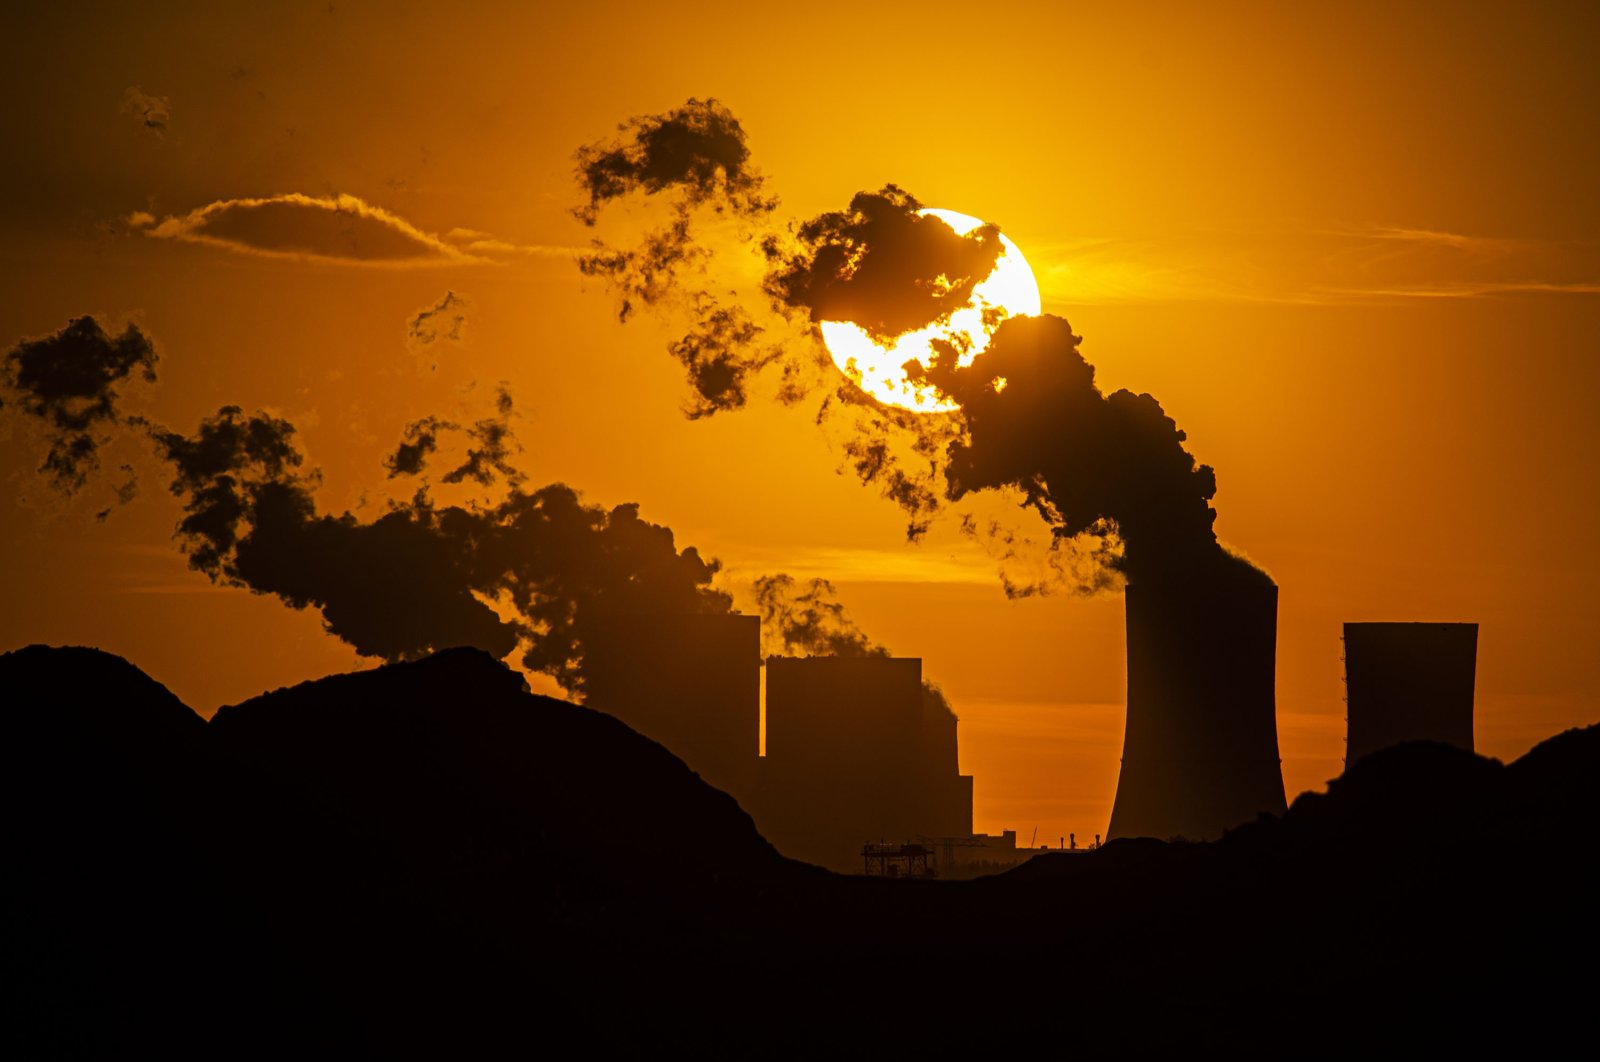 The sun sets behind thecoal-fired Boxberg Power Station and the Reichwalde coal mine, seen from the vantage pointof Hammerstadt, Germany,on April 9, 2020. (Getty Images)